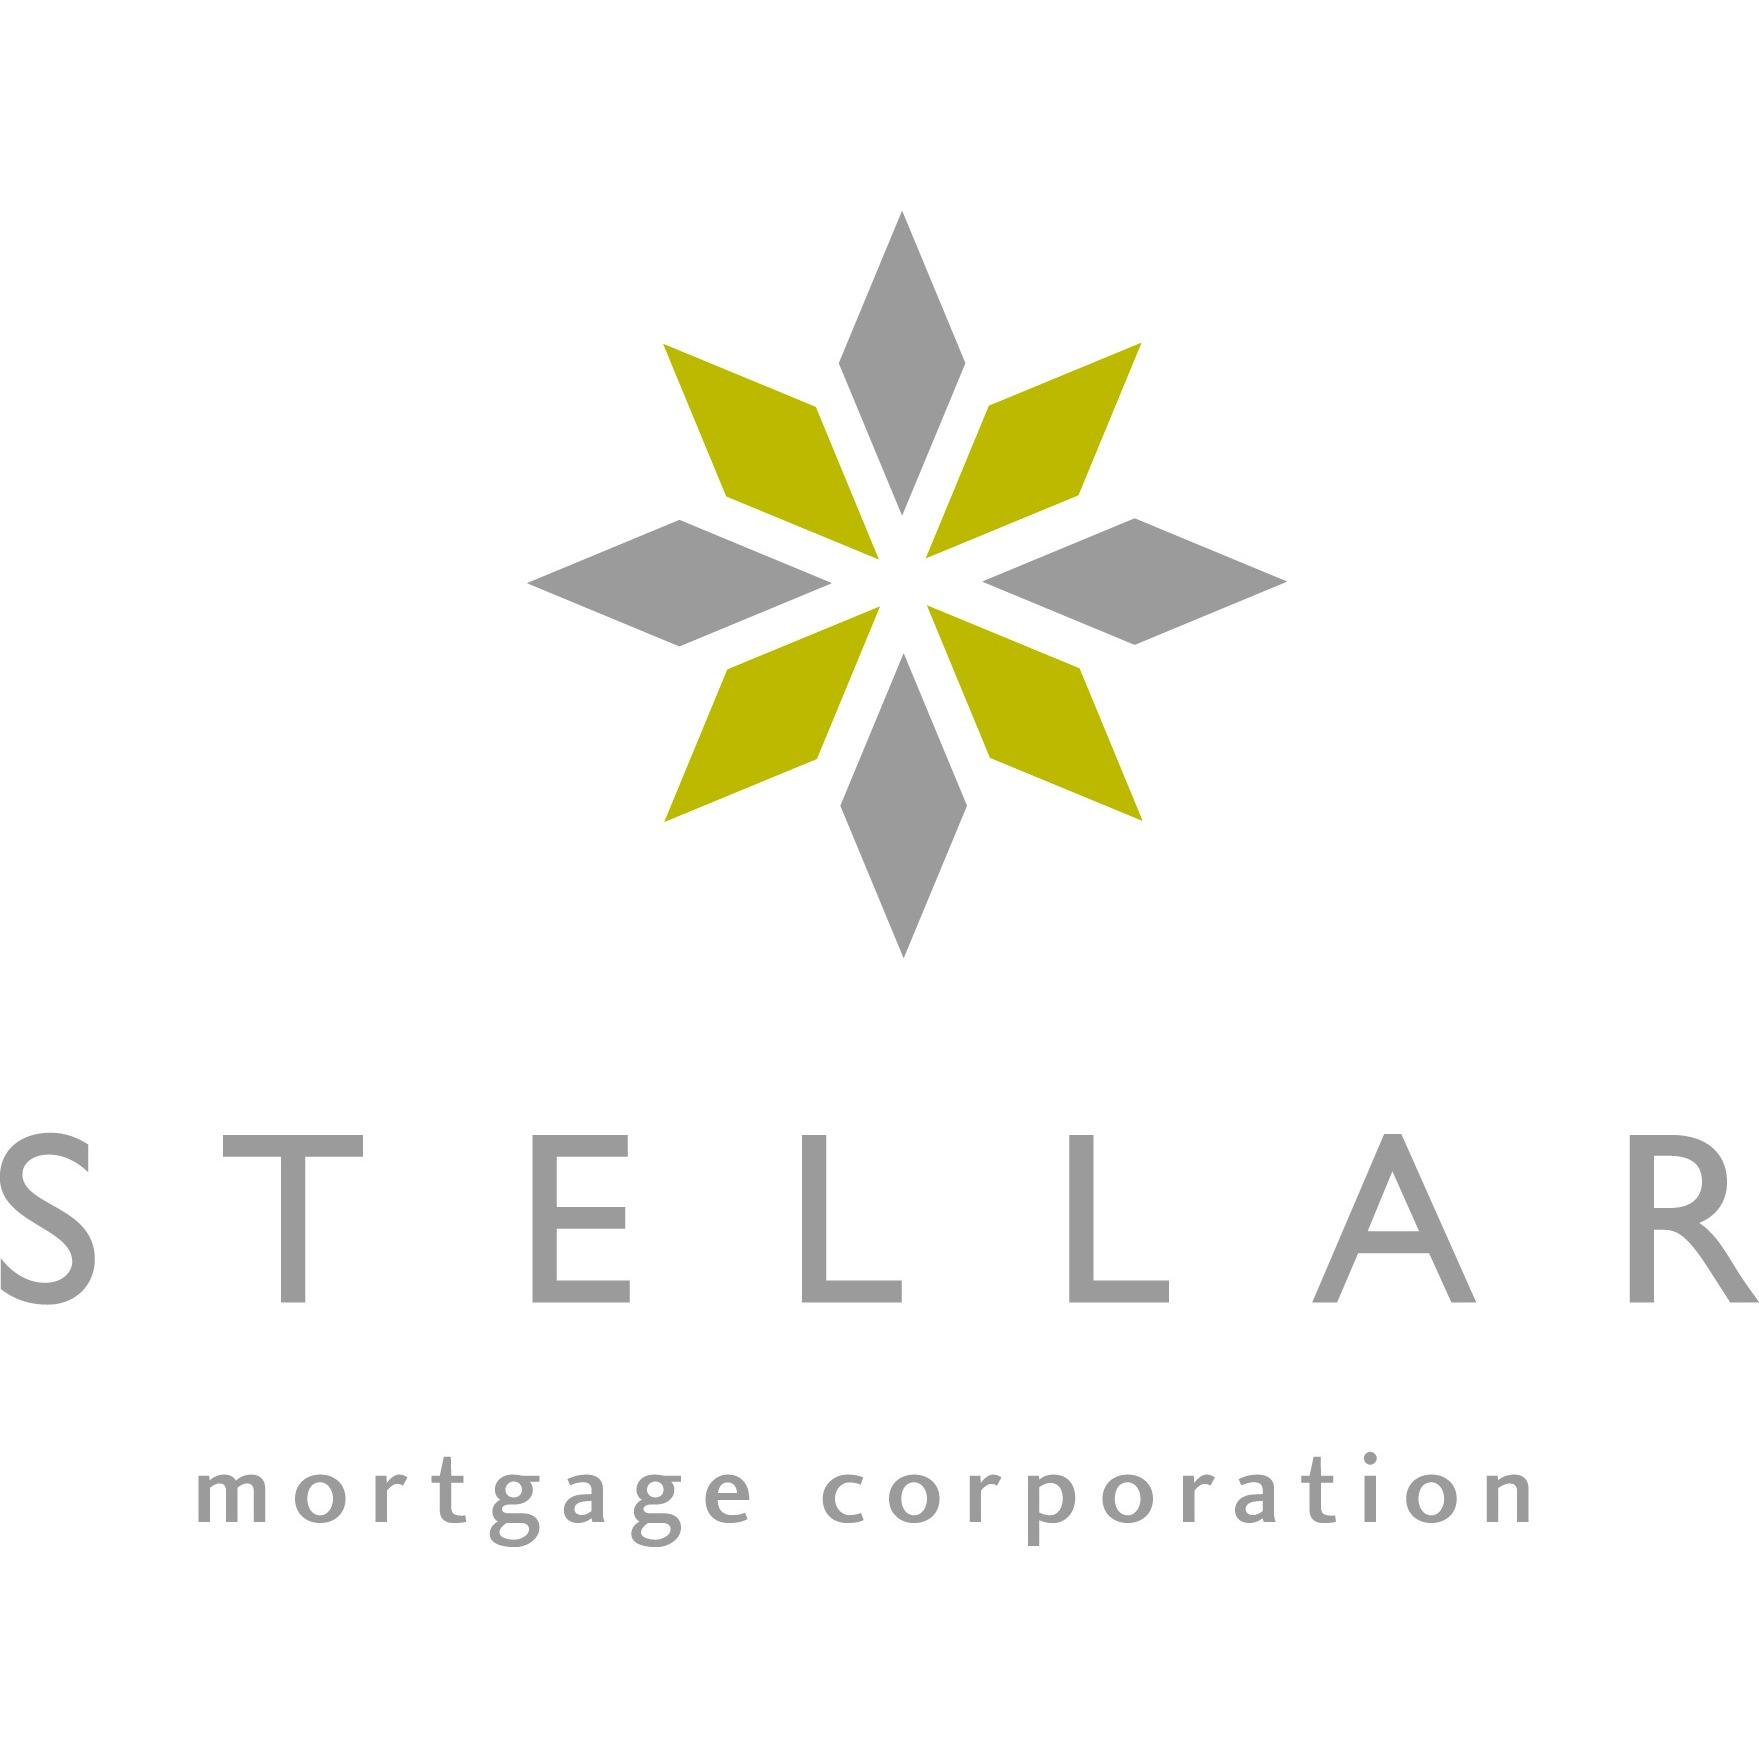 STELLAR mortgage corporation